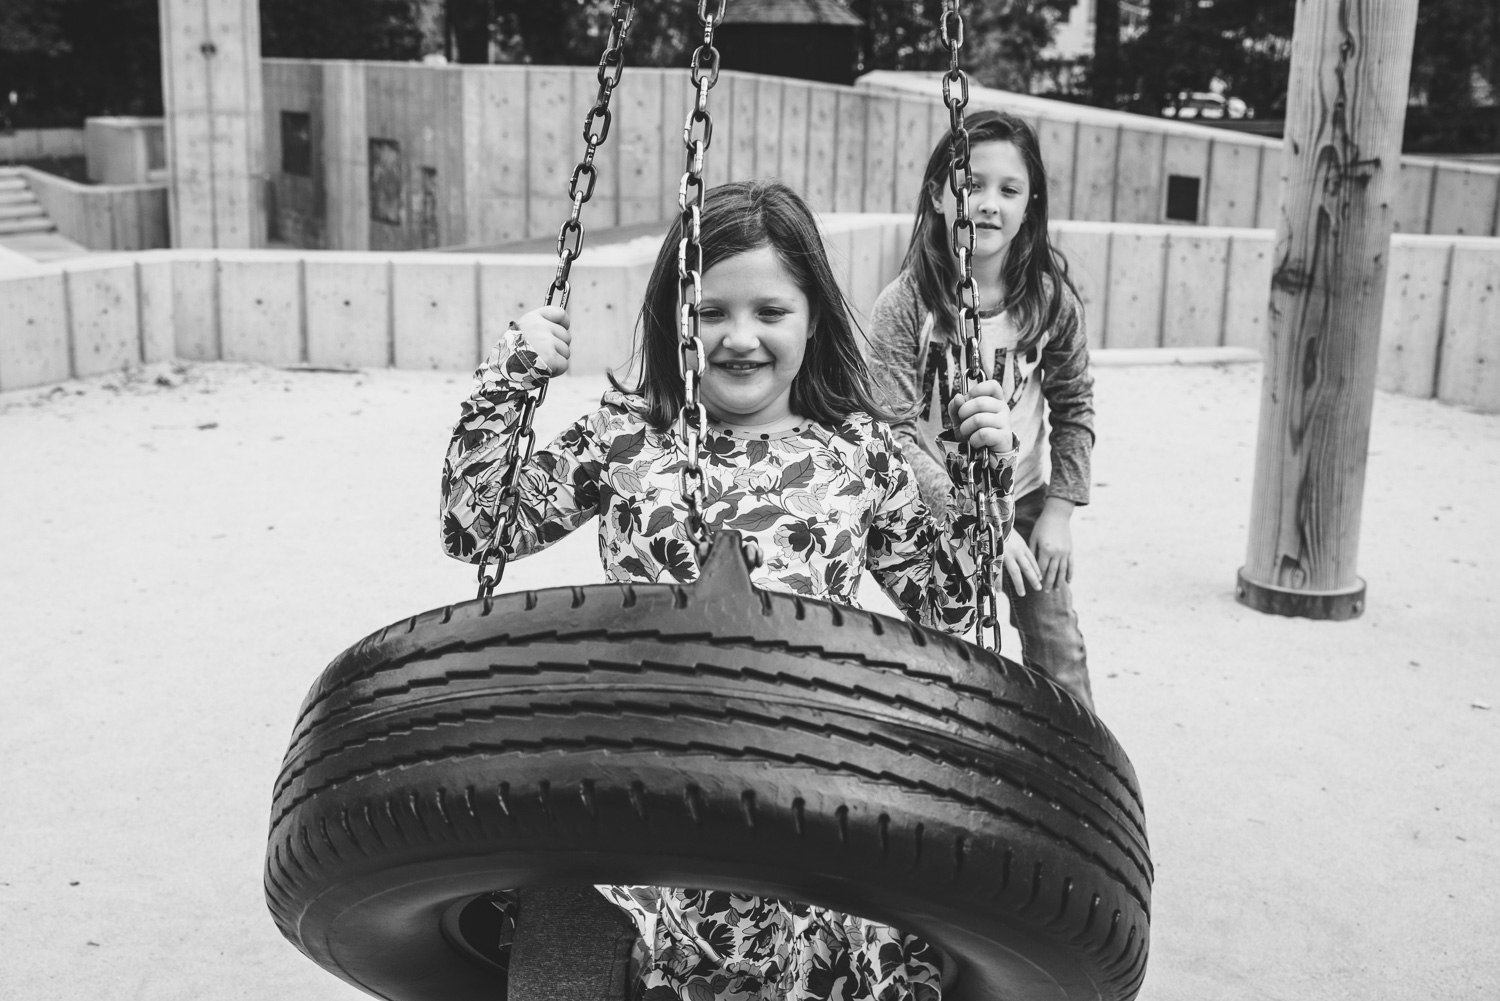 Girls playing on the tire swing in Central Park.